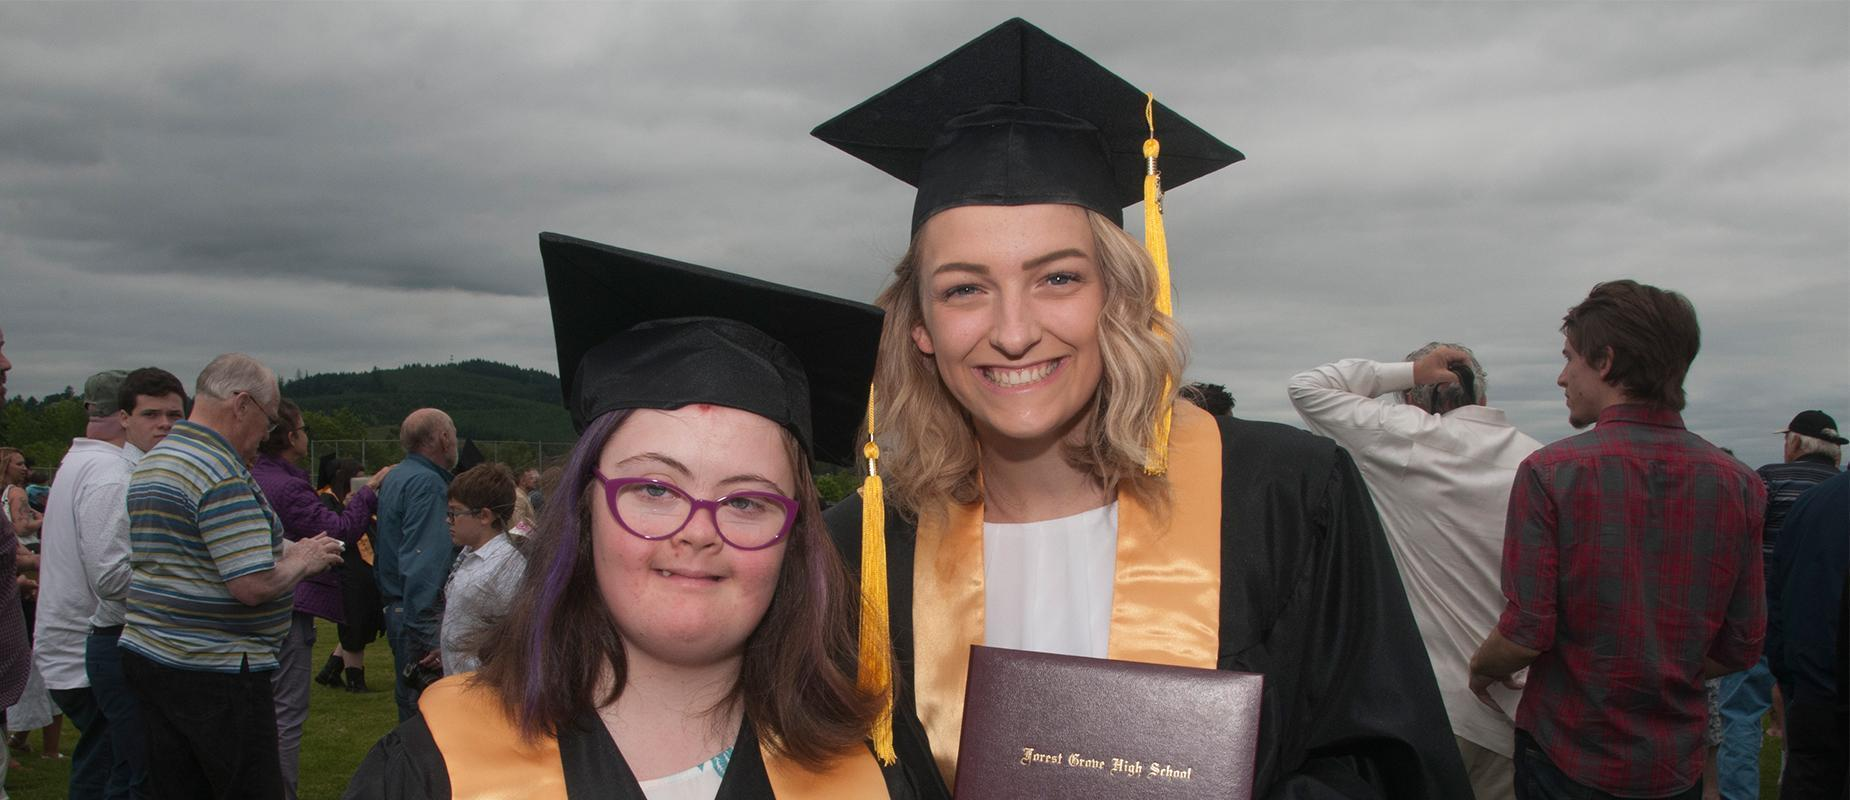 Two graduates posing for picture in cap and gown